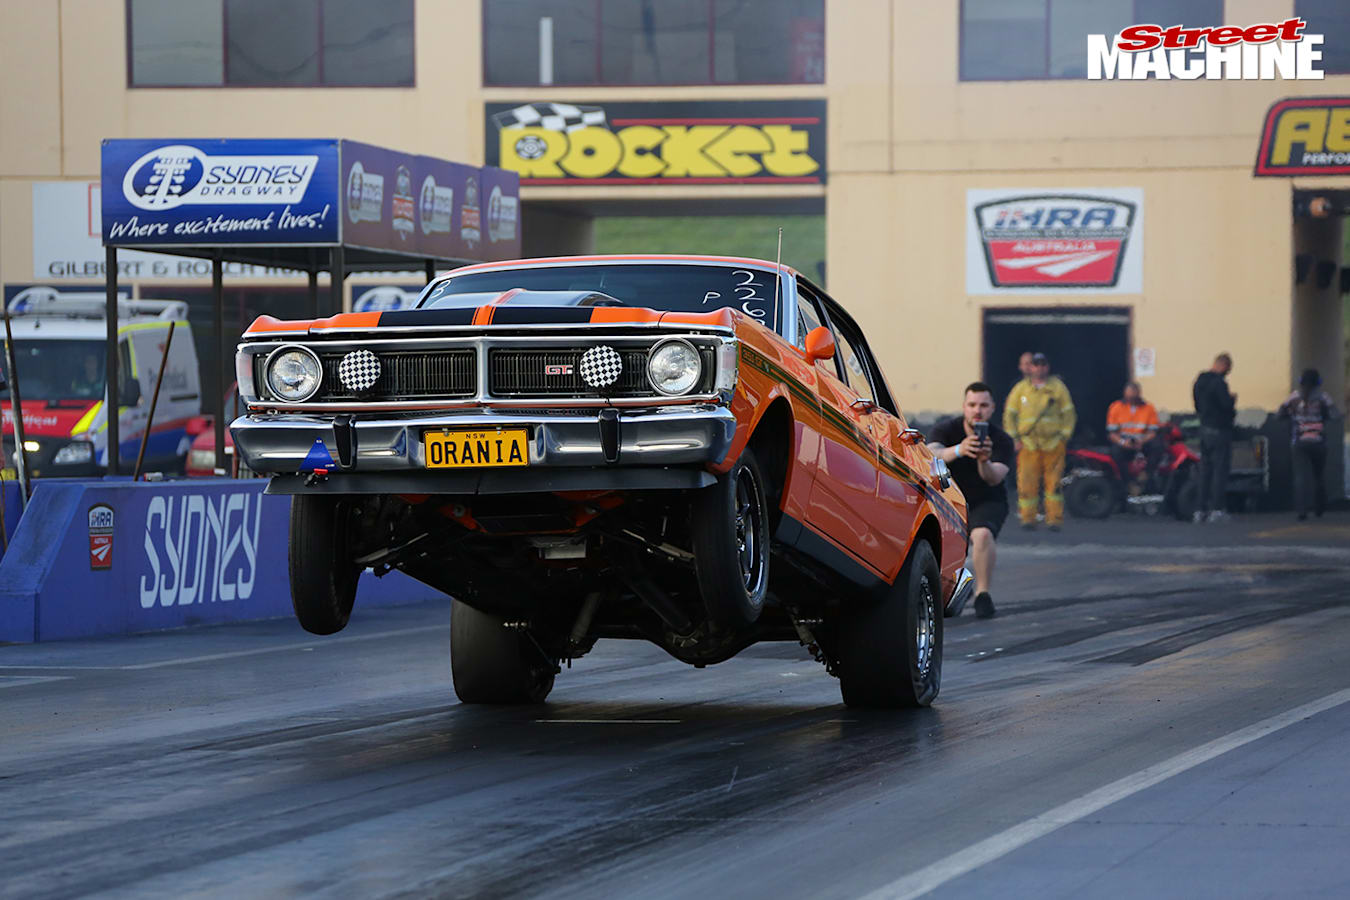 Street Machine Features Ford Falcon Drag